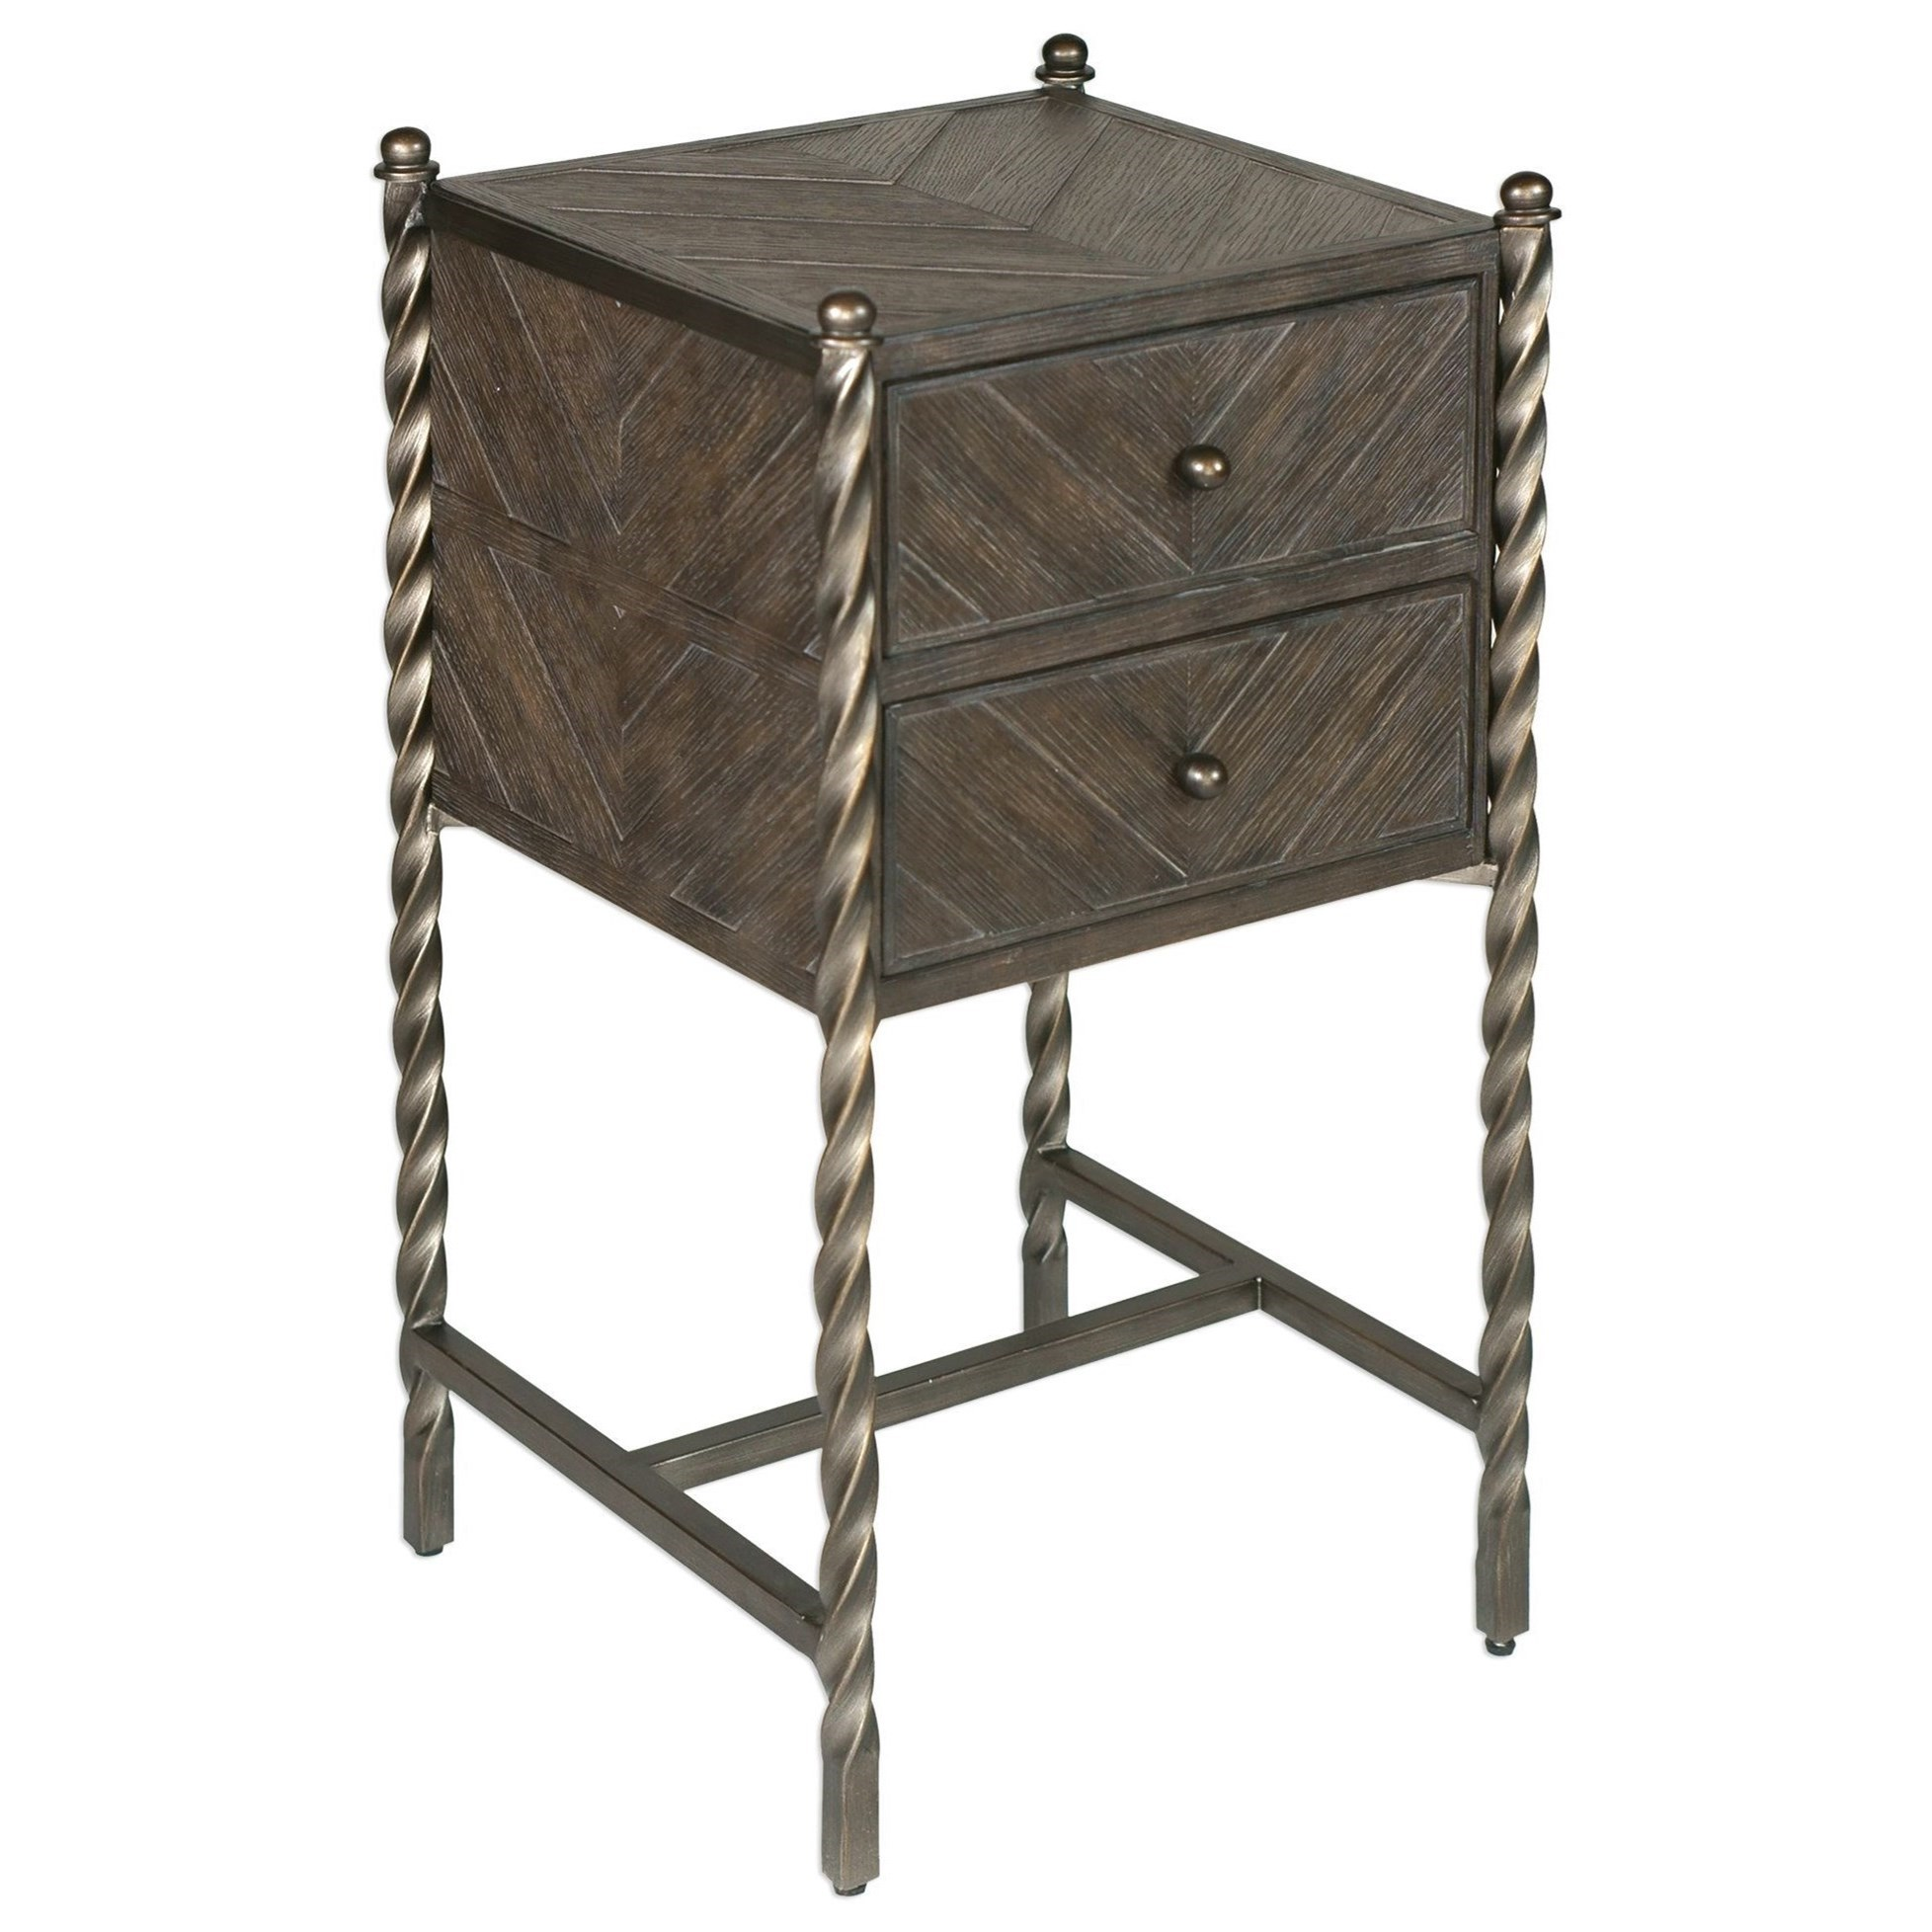 uttermost accent furniture occasional tables hagar oak products color table floor cabinet ikea storage shelves with bins bedroom decoration cabinets glass doors piece coffee set